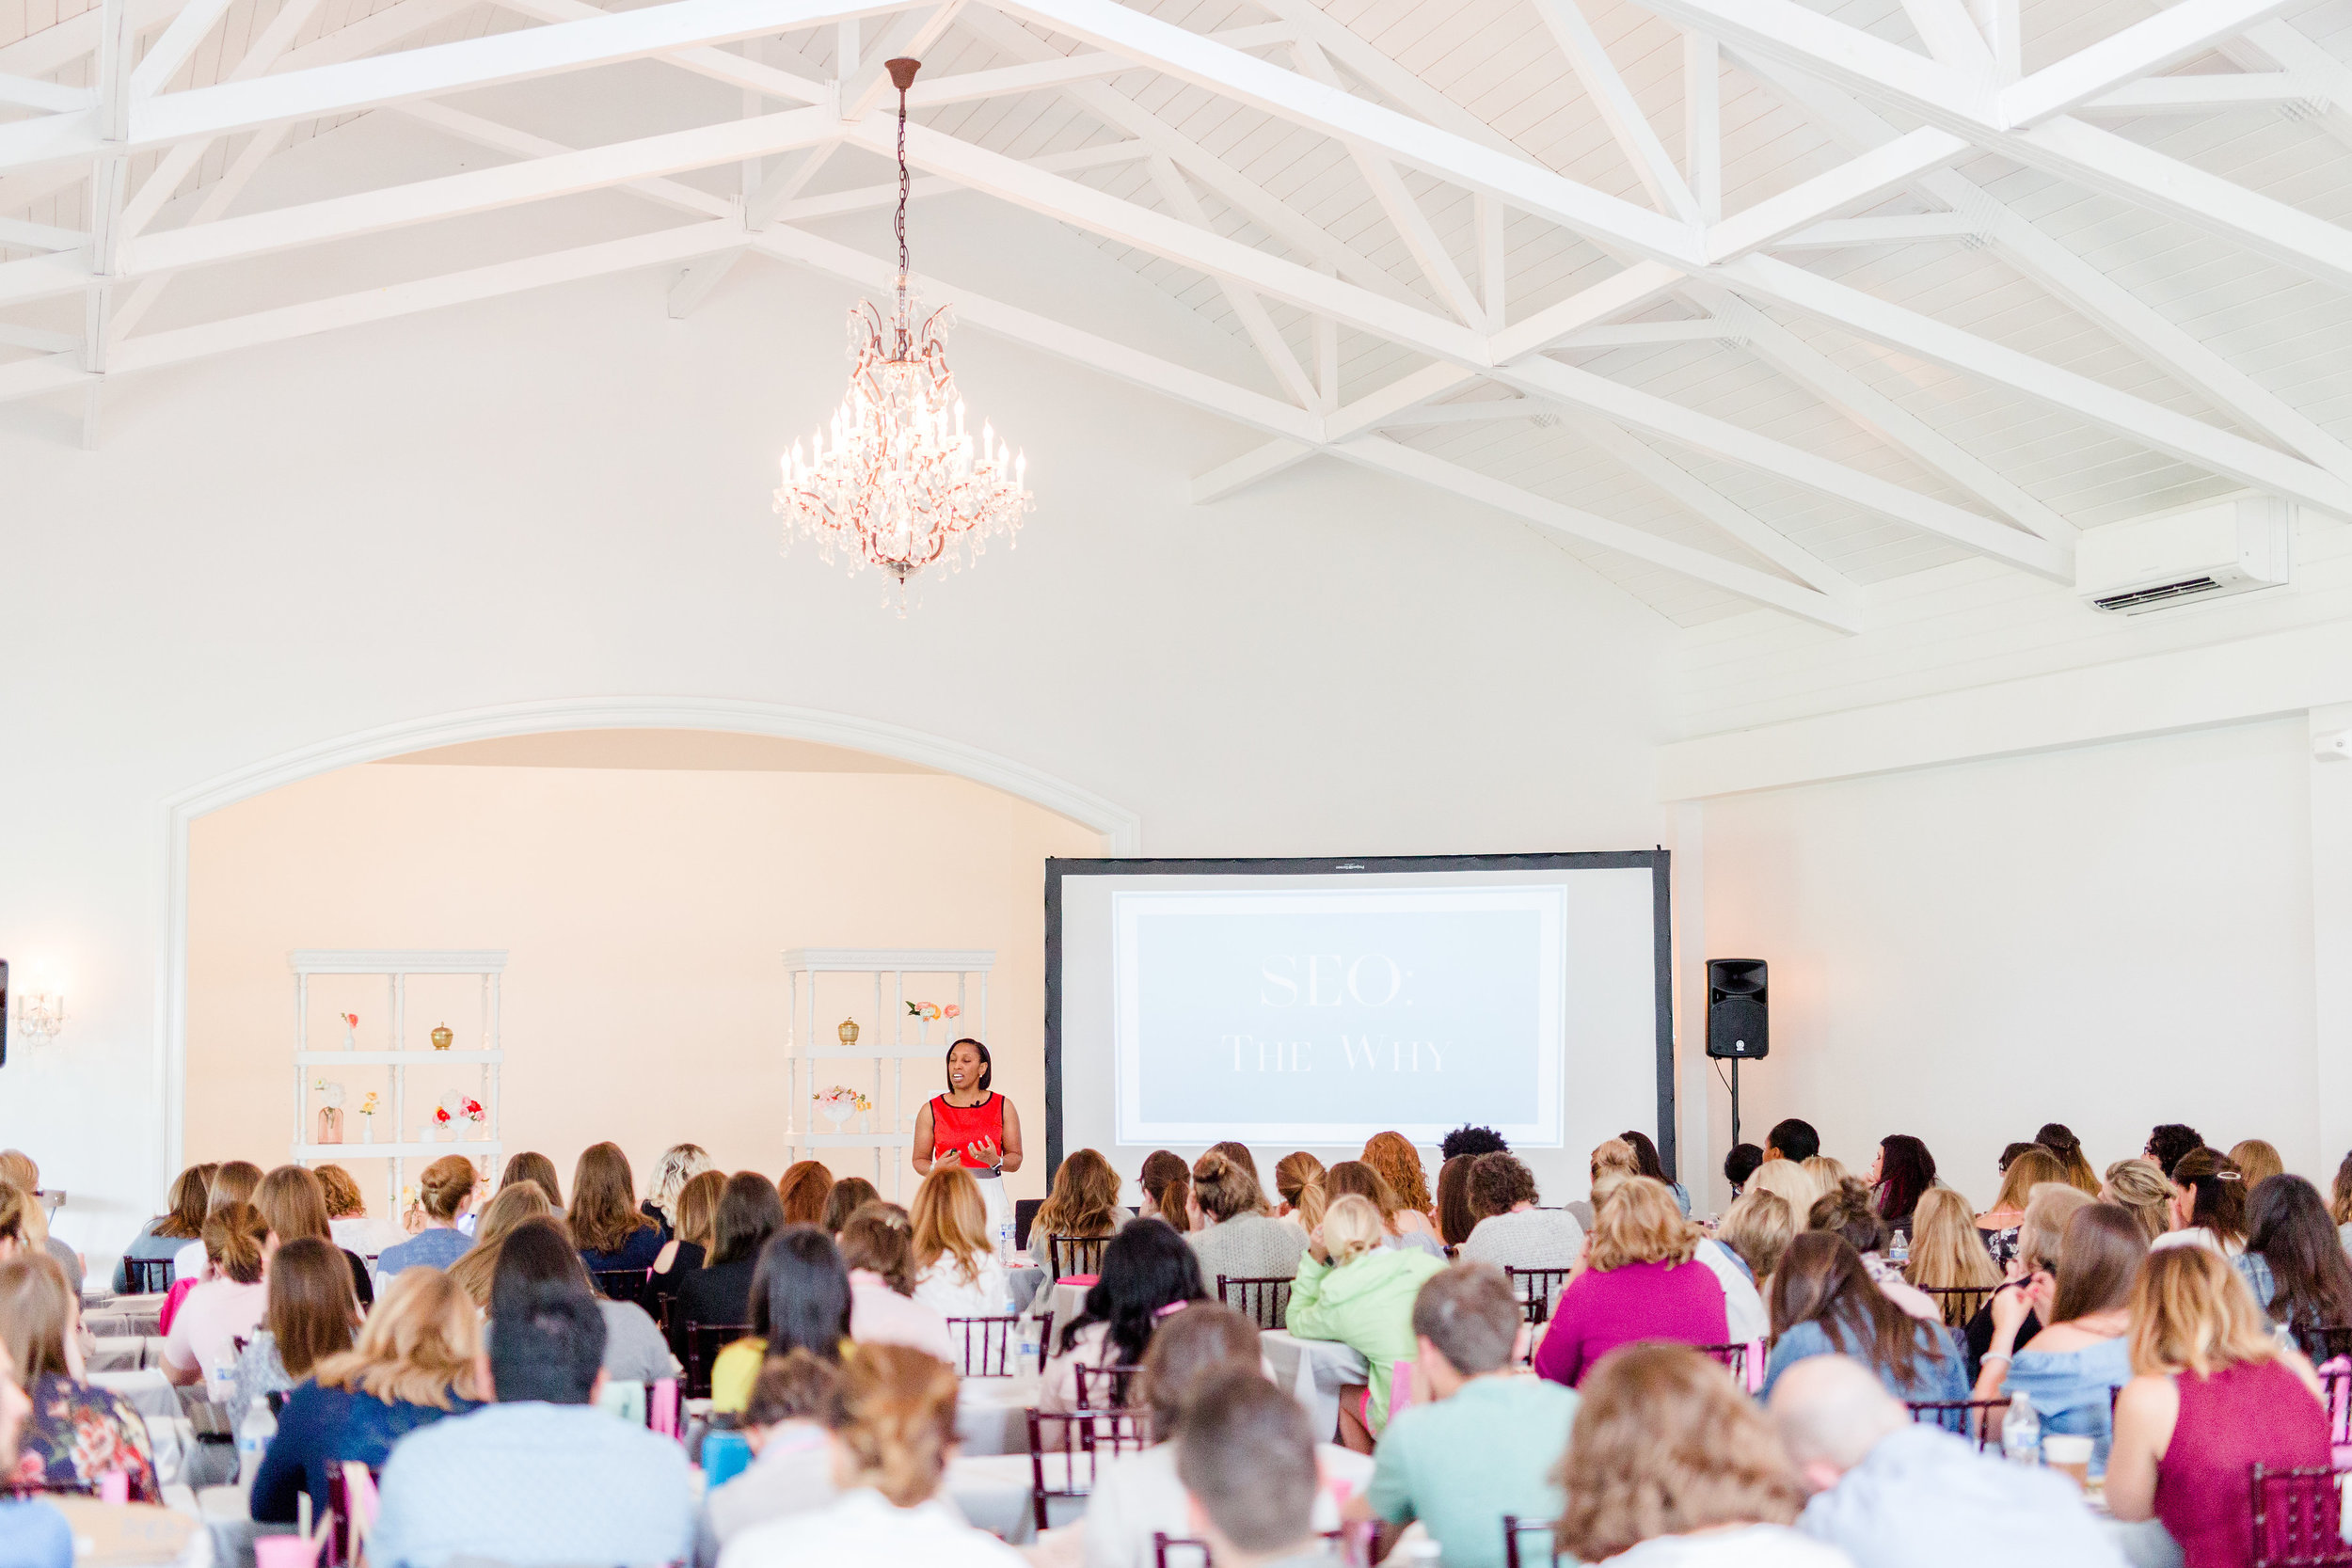 Merrimon-Wynne-Creative-At-Heart-Conference-Raleigh-North-Carolina-Holly-Felts-Photography-165.jpg